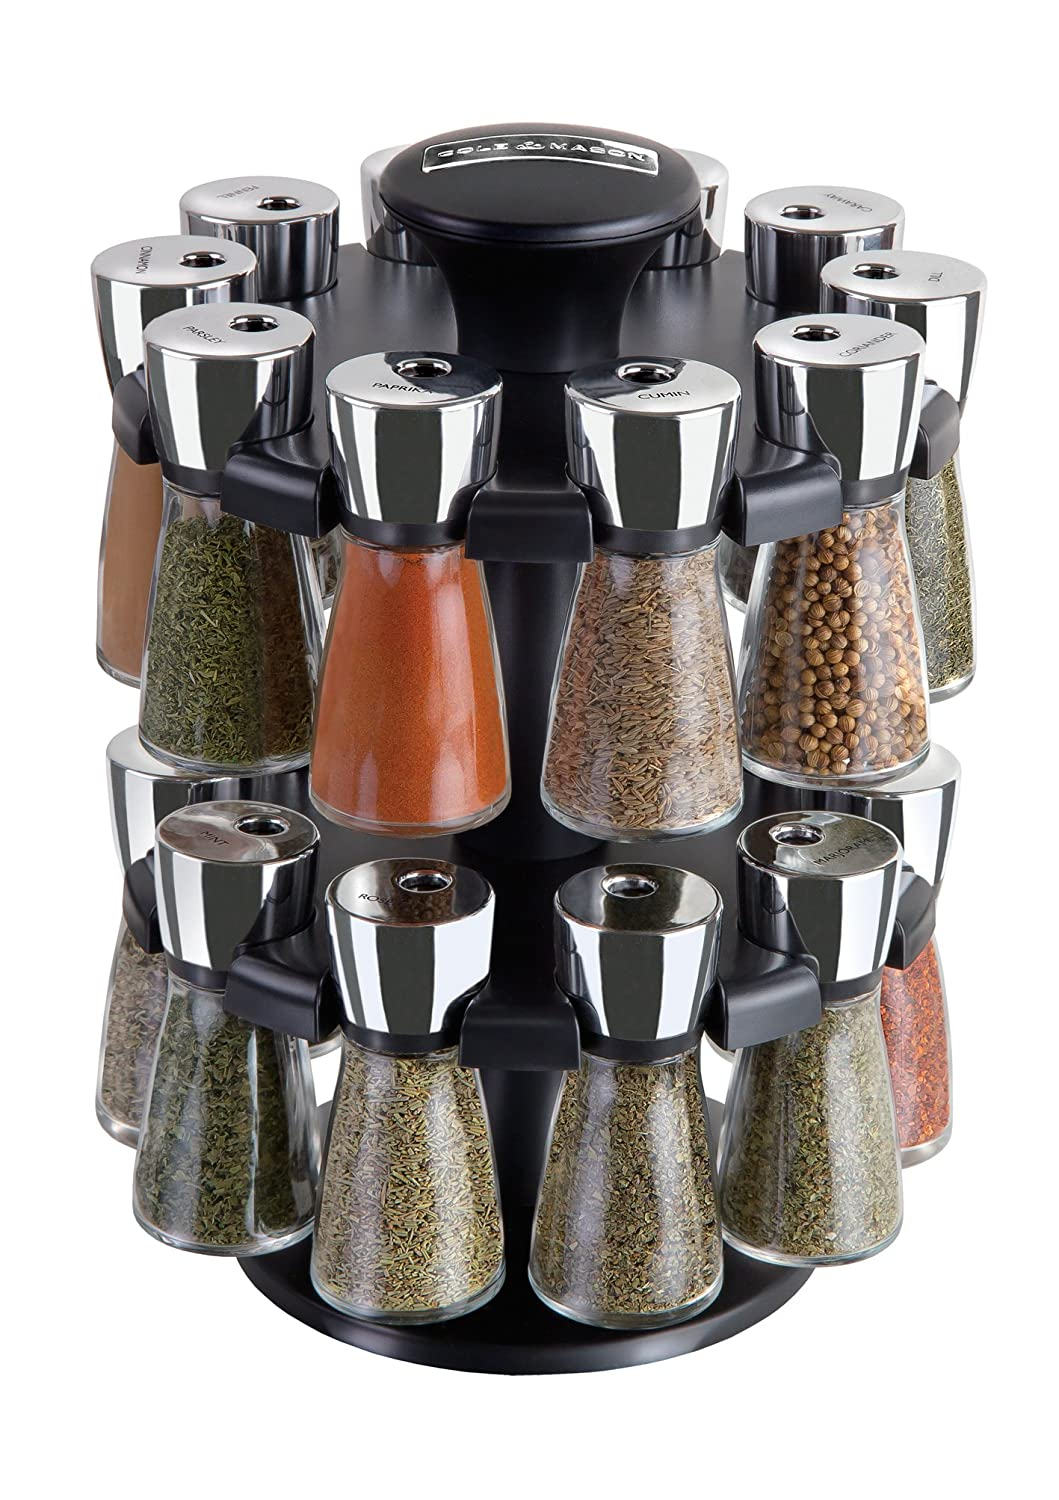 Amazon.com: Cole U0026 Mason Herb And Spice Rack With Spices   Revolving  Countertop Carousel Set Includes 20 Filled Glass Jar Bottles: Kitchen U0026  Dining